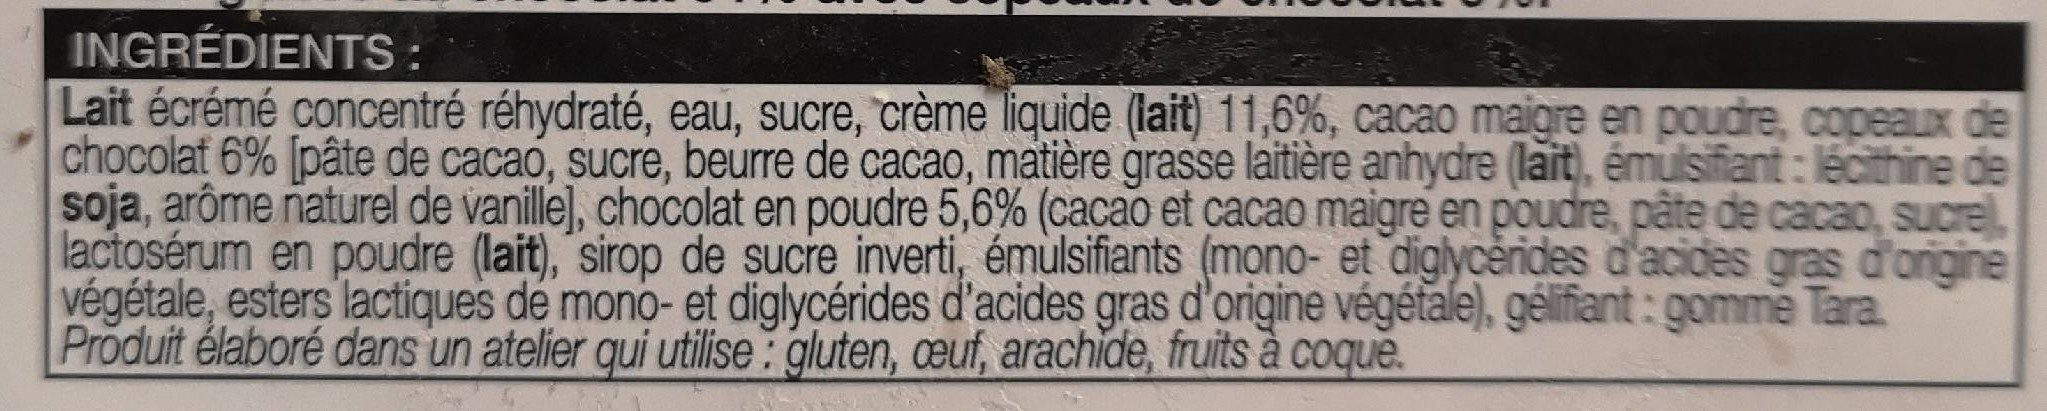 Glace au chocolat - Ingredients